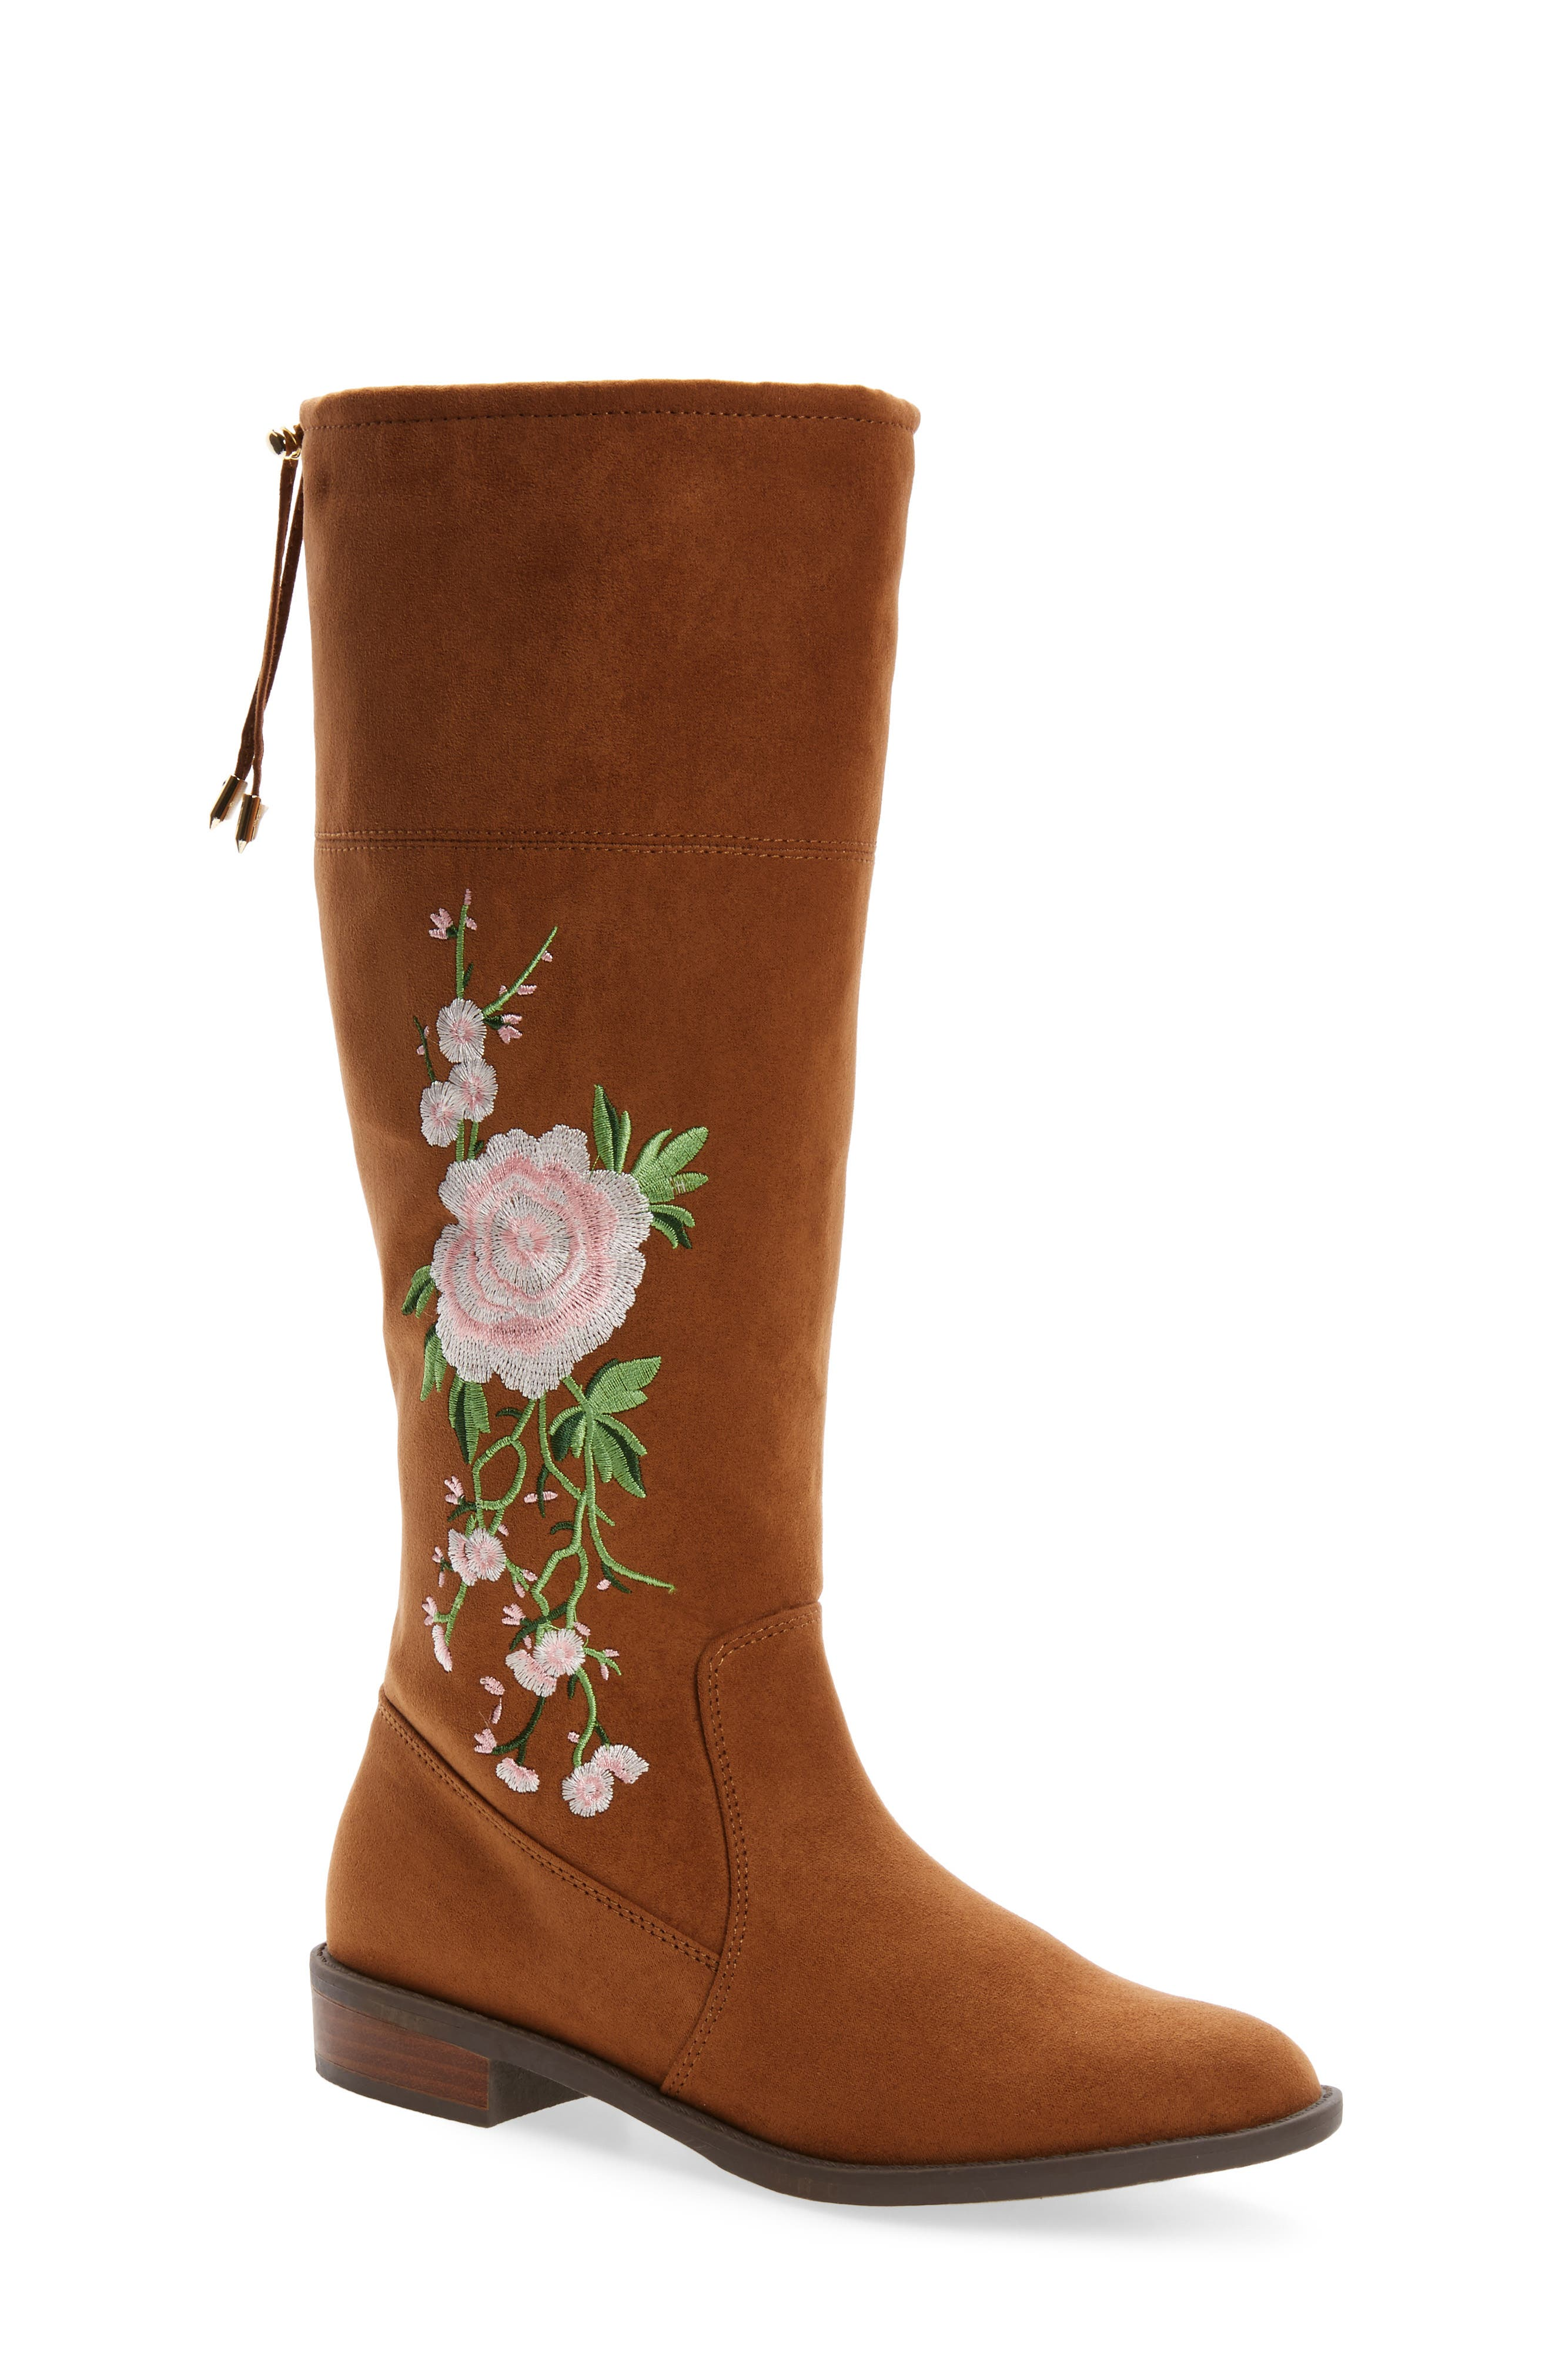 Pia Kent Embroidered Boot,                             Main thumbnail 1, color,                             200